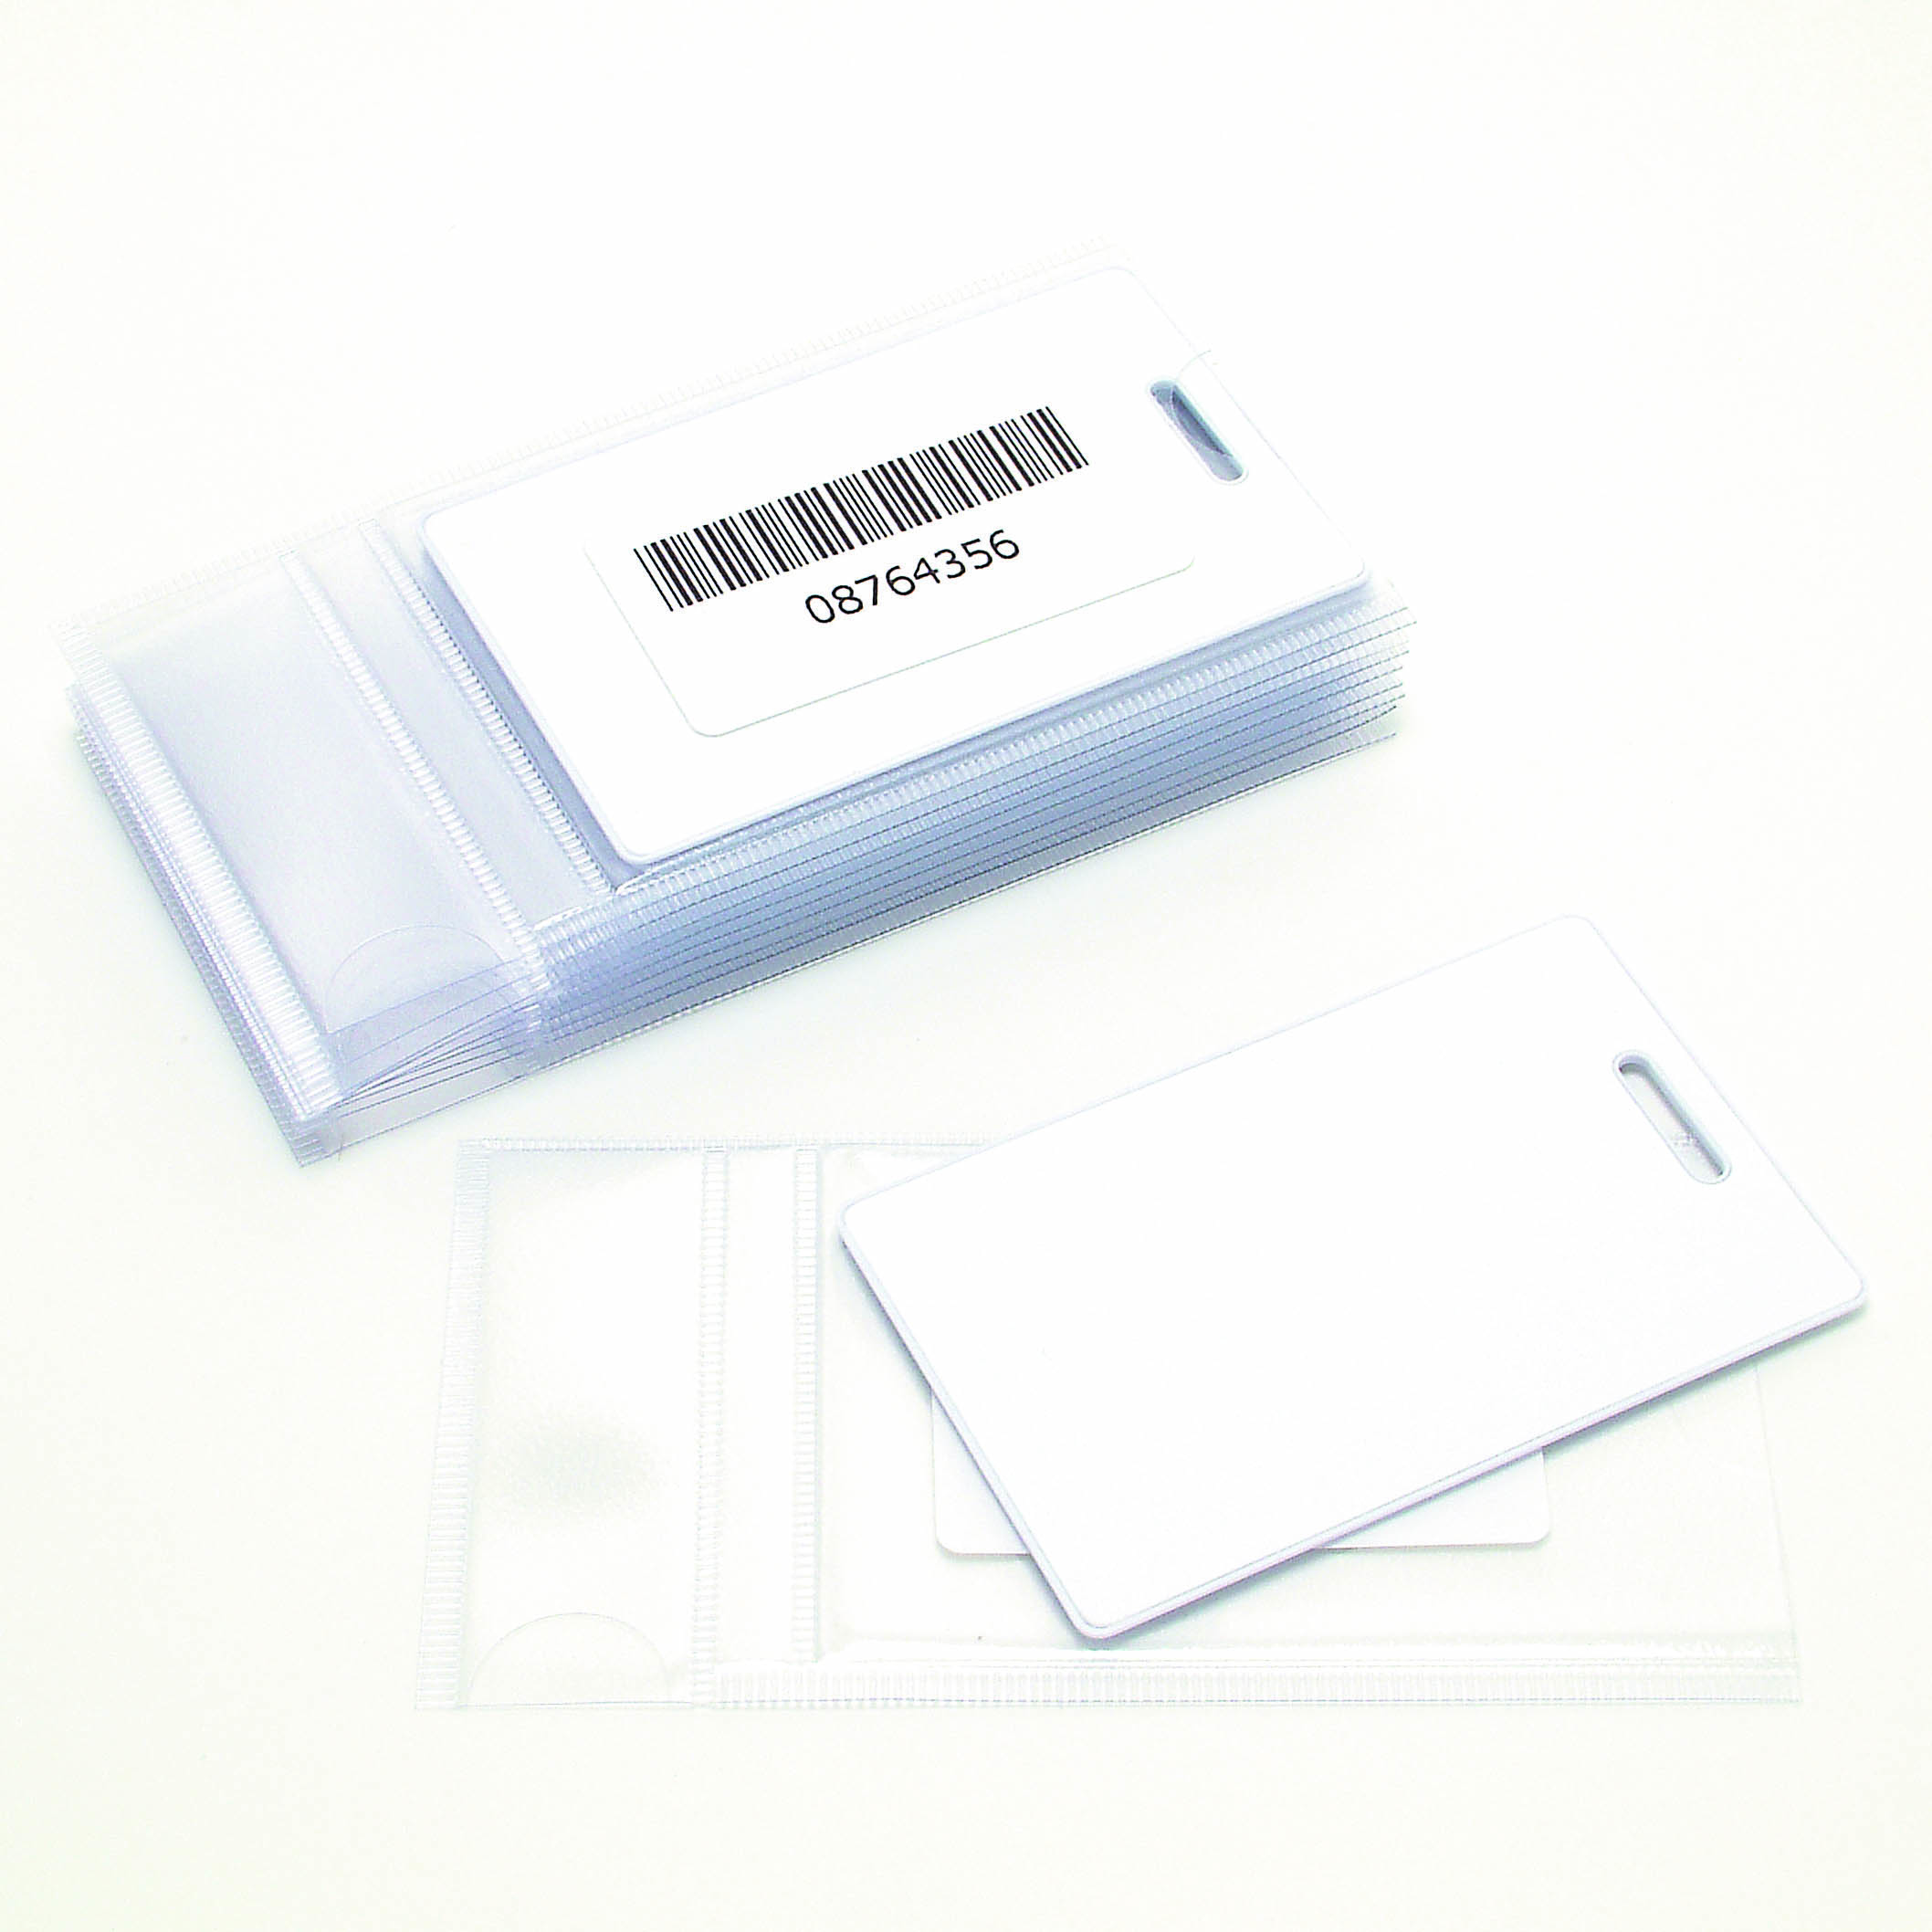 Net2 proximity clamshell cards - Pack of 10